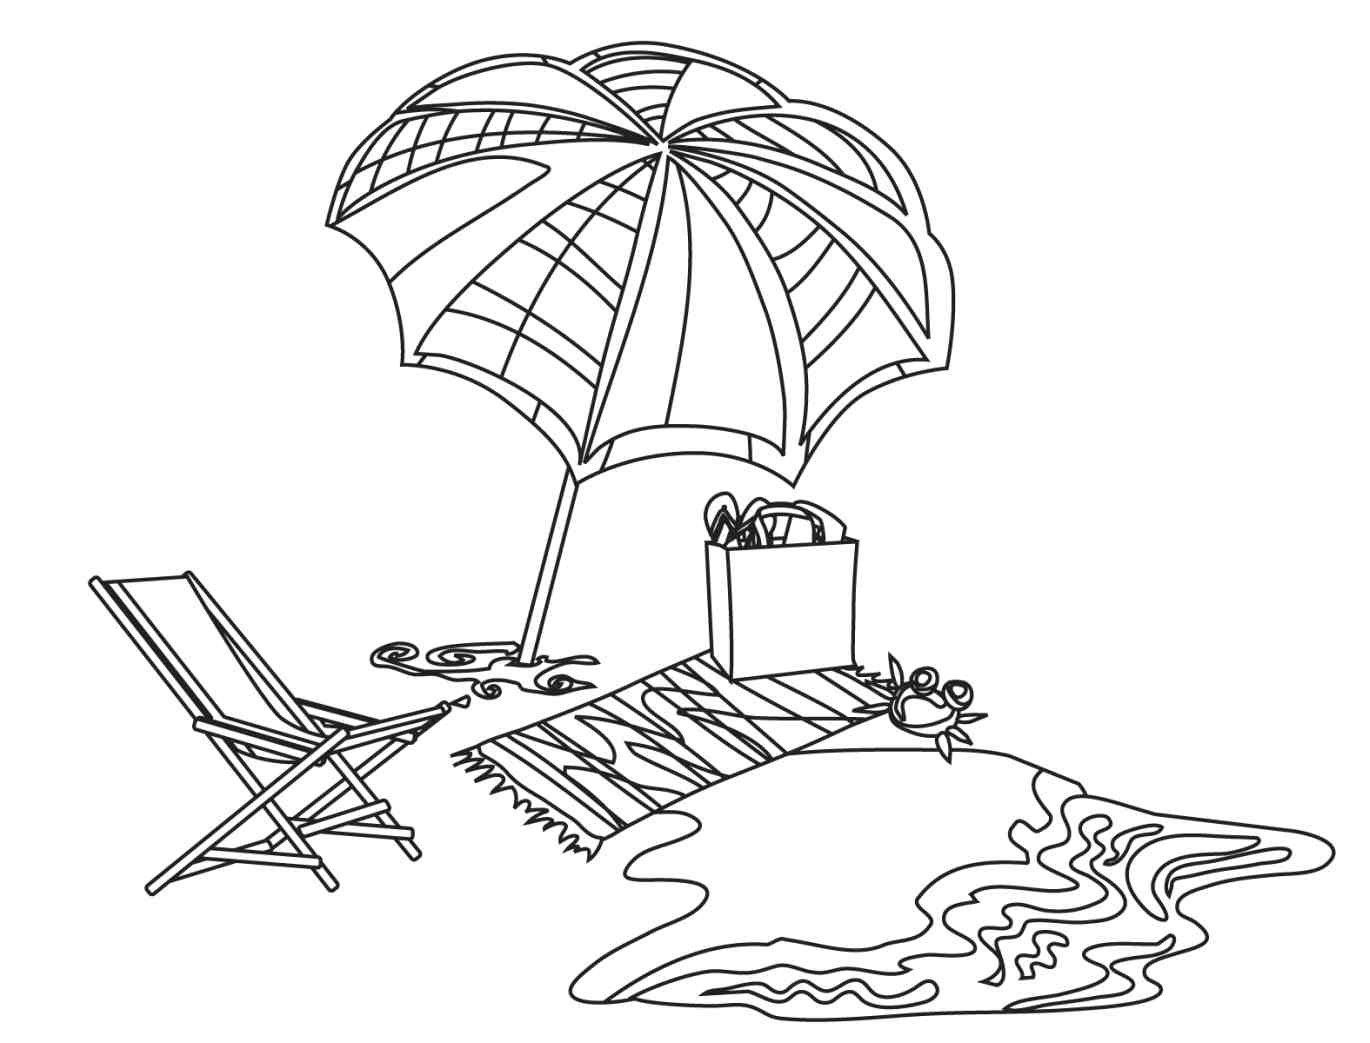 beach scene coloring pages beach coloring pages beach scenes activities beach scene coloring pages